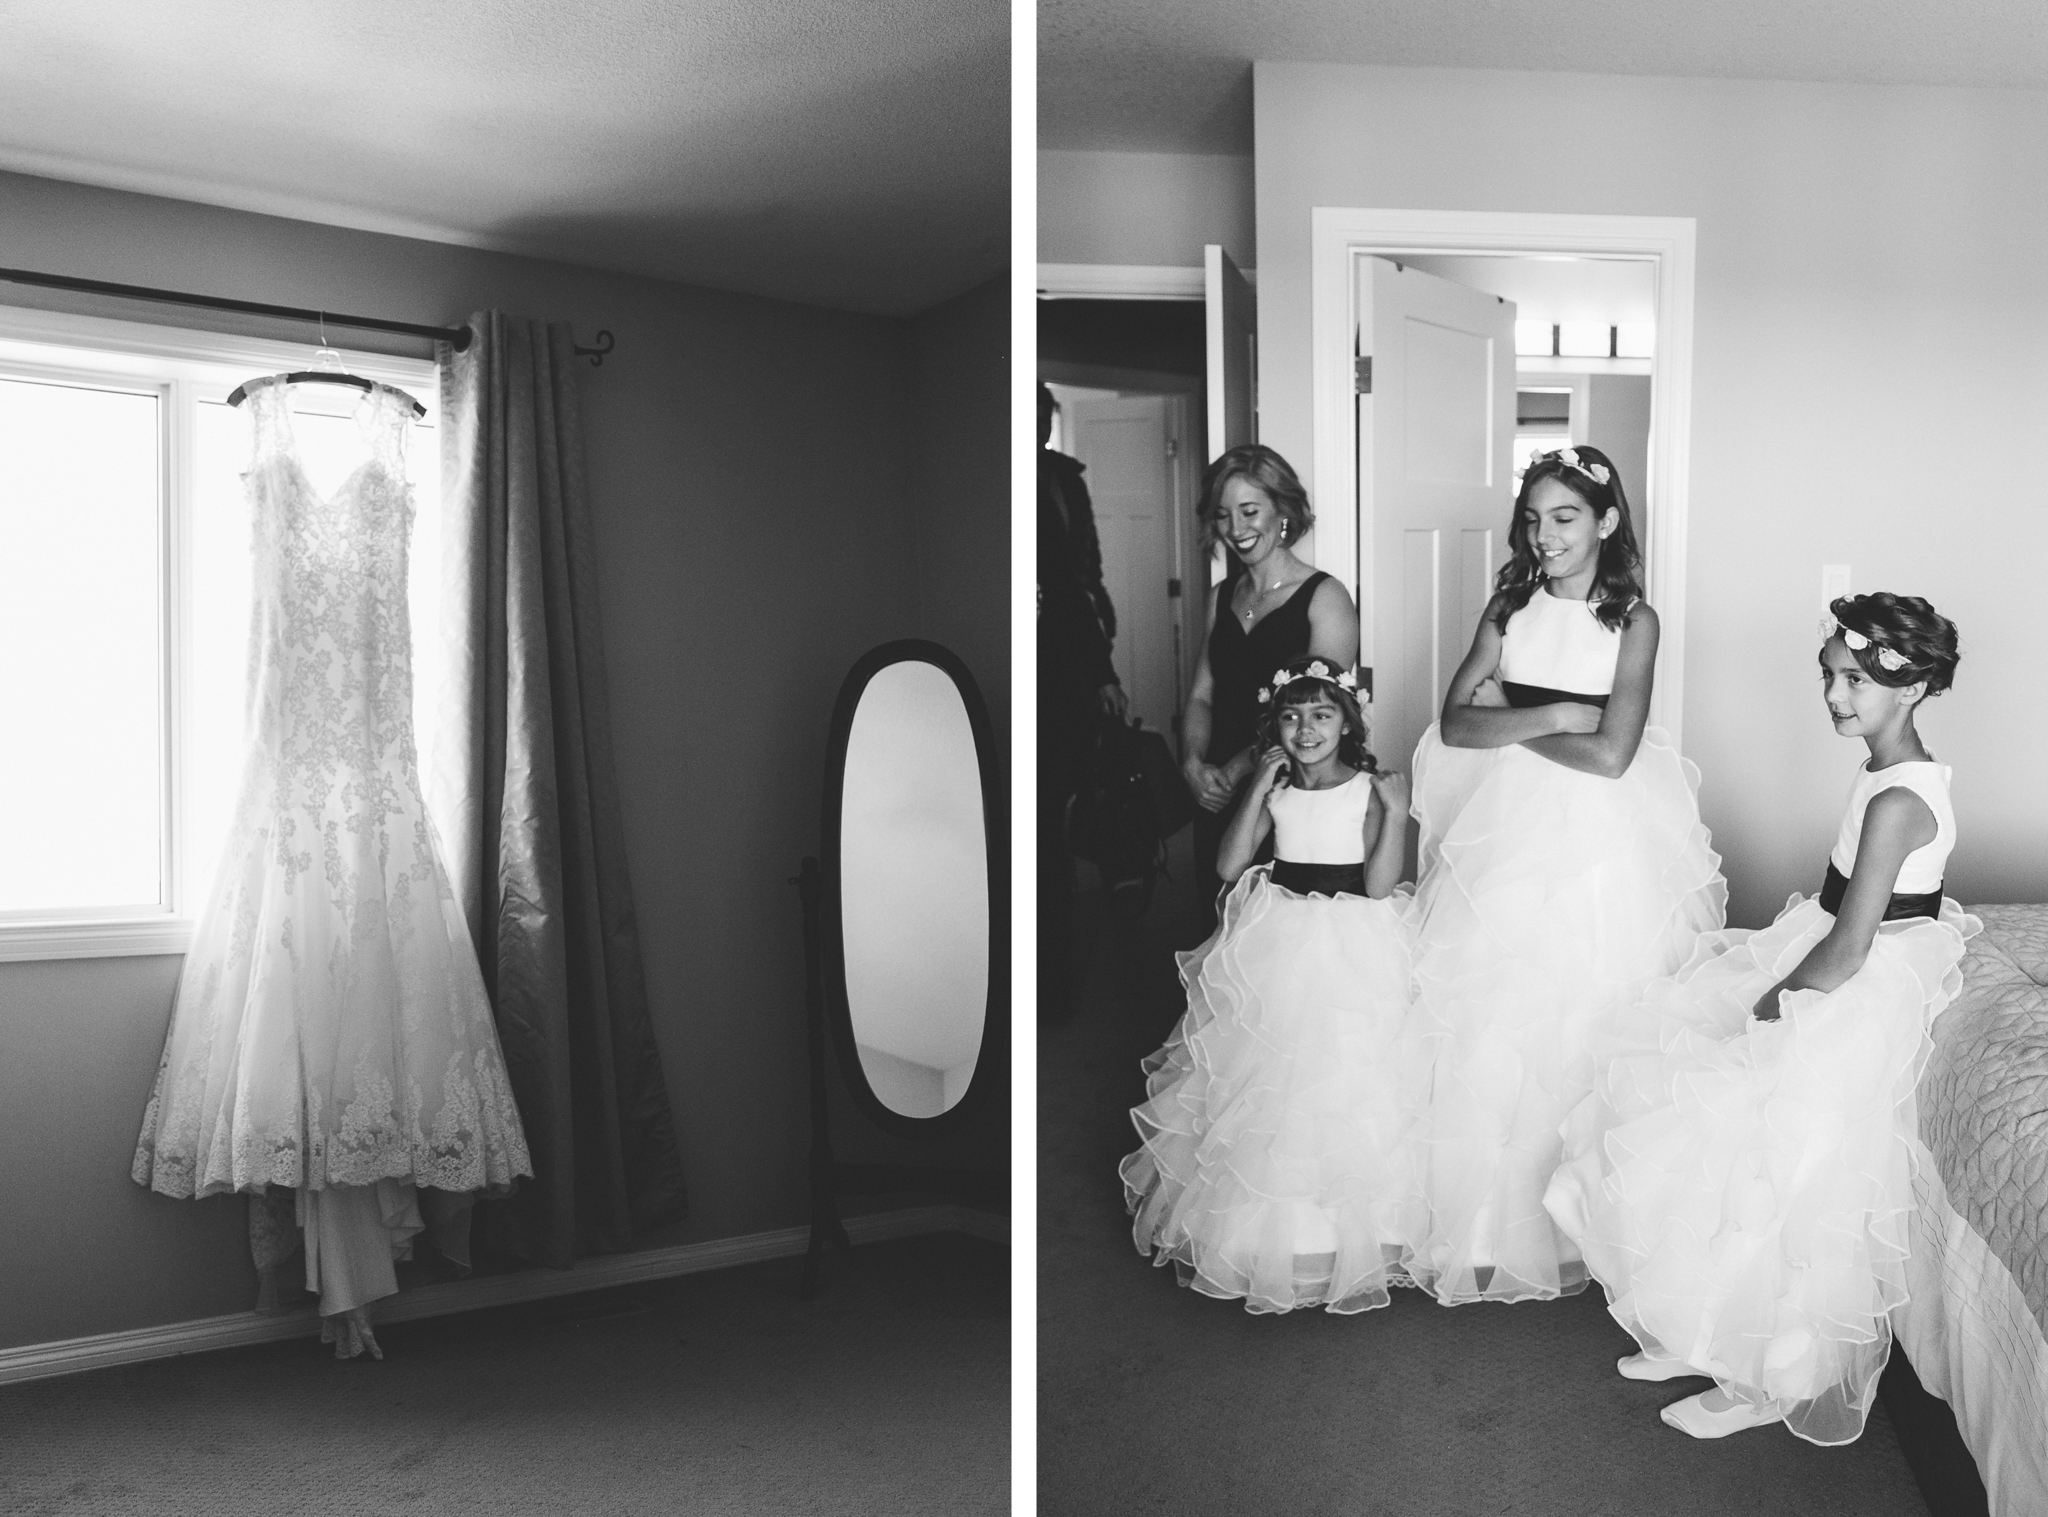 lethbridge-wedding-photographer-love-and-be-loved-photography-groom-prep-photo-image-picture-107.jpg